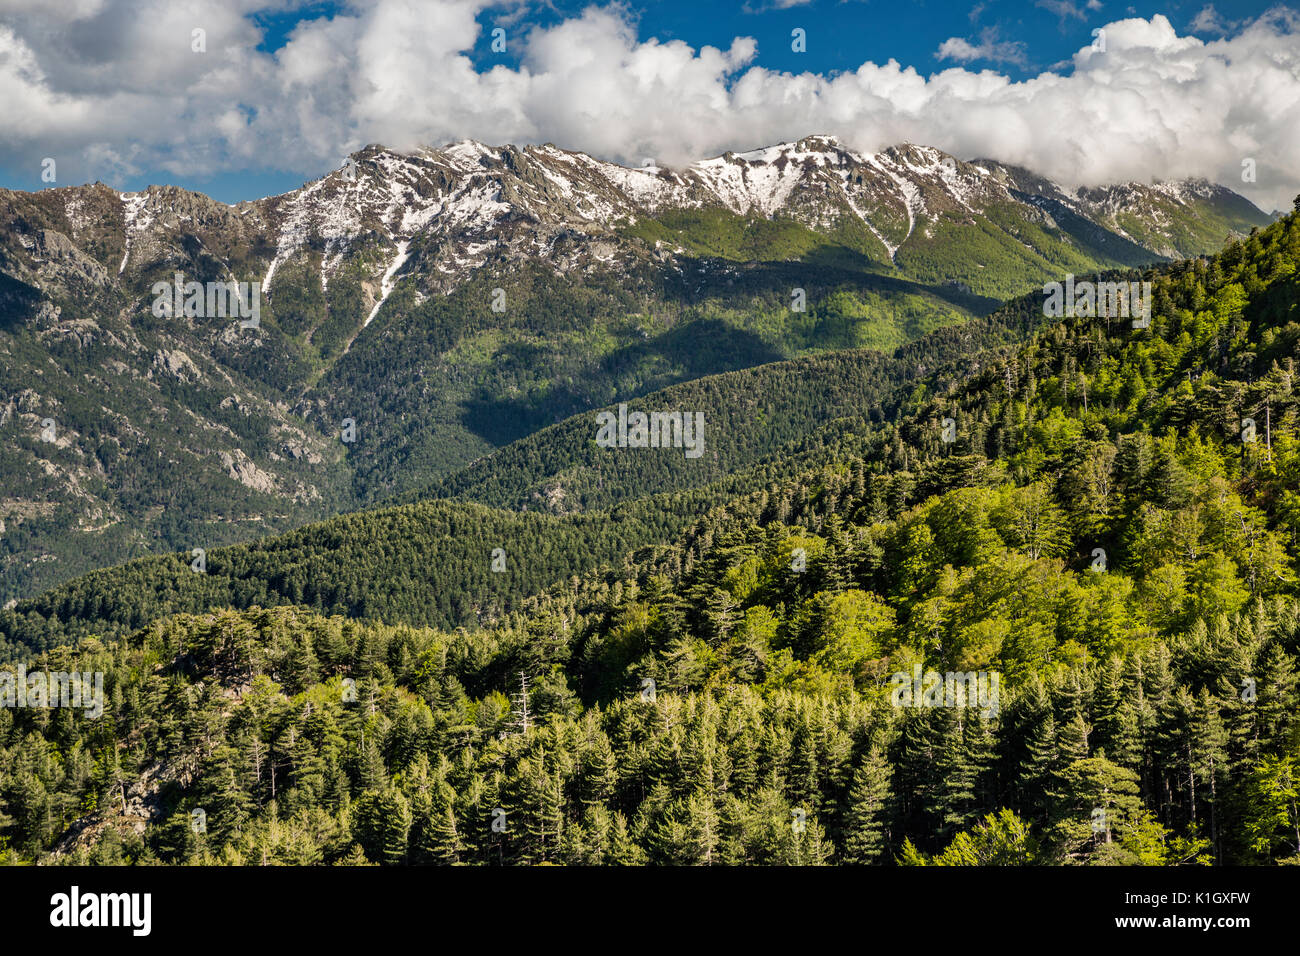 Punta Cappella massif, view from GR 20 trail  near Capannelle mountain hut, Corsica, France - Stock Image